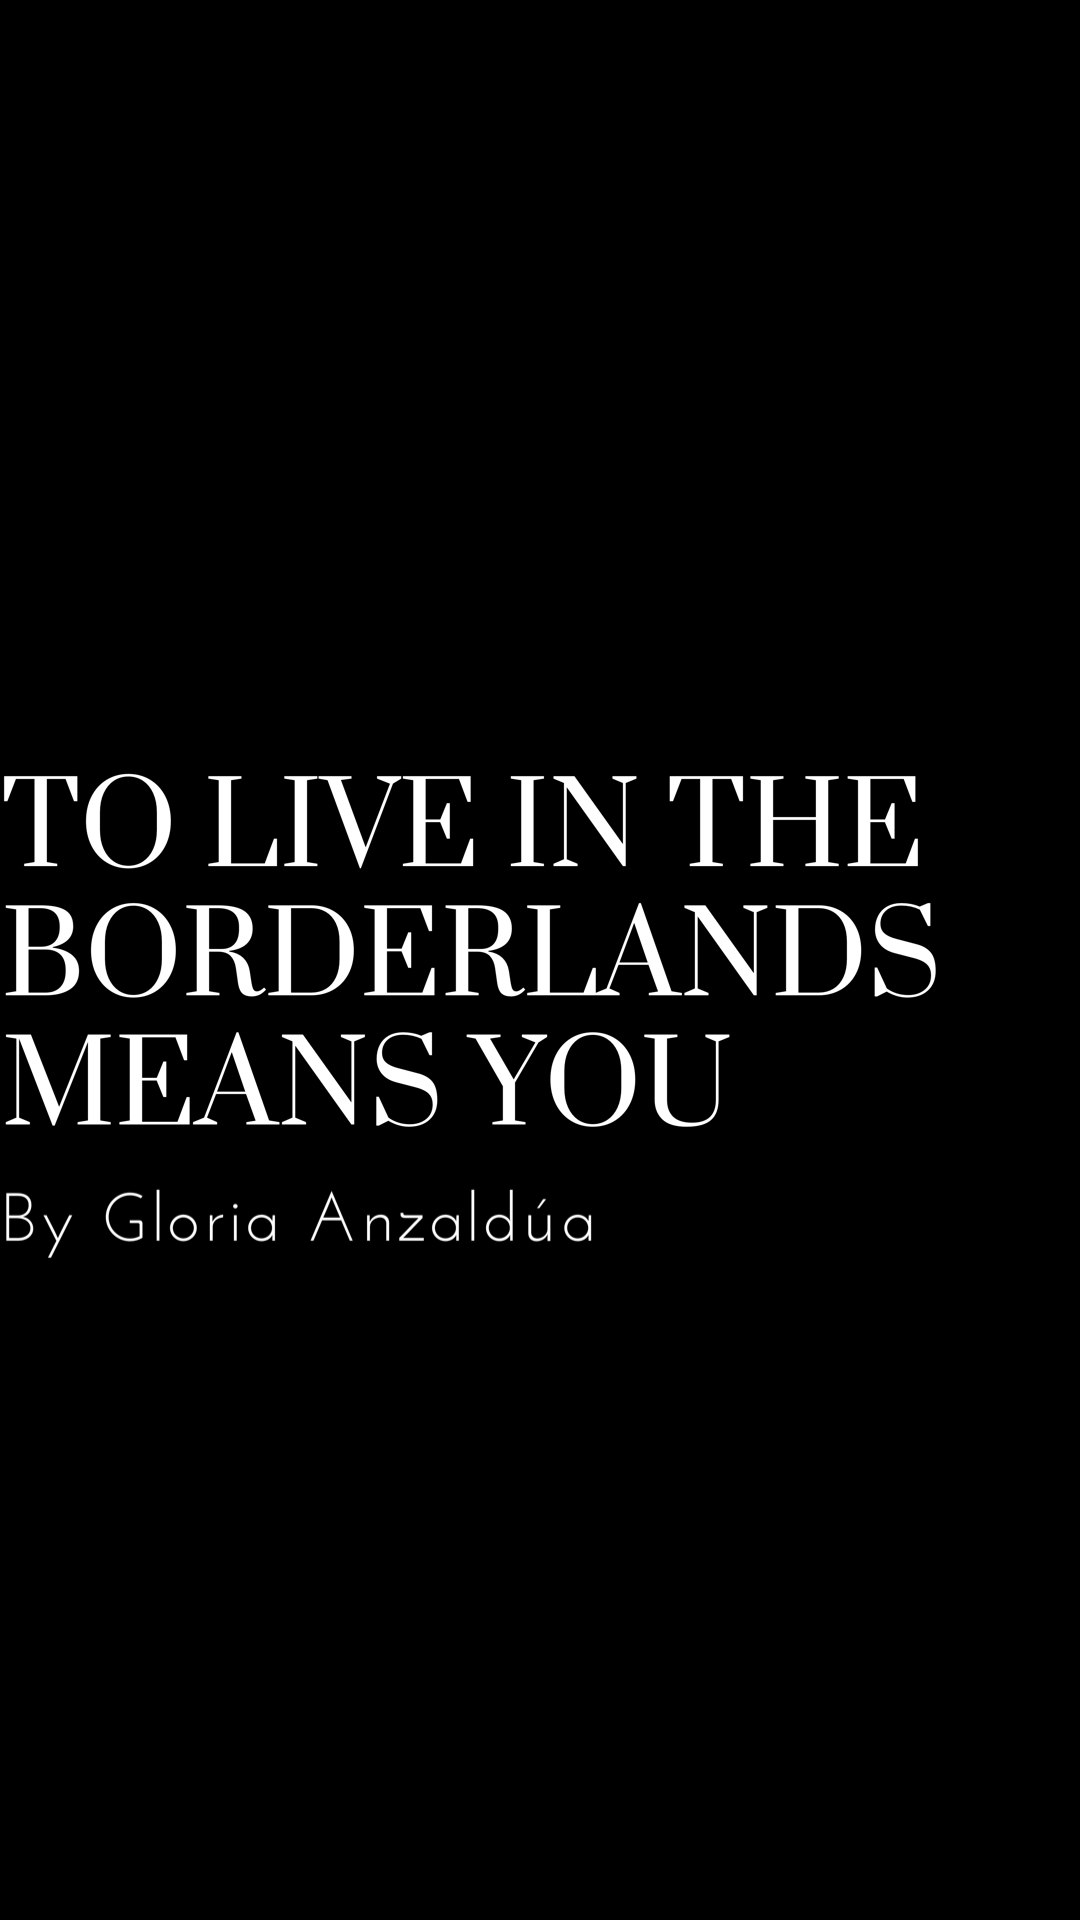 To Live in the Borderlands Means You Gloria Anzaldúa